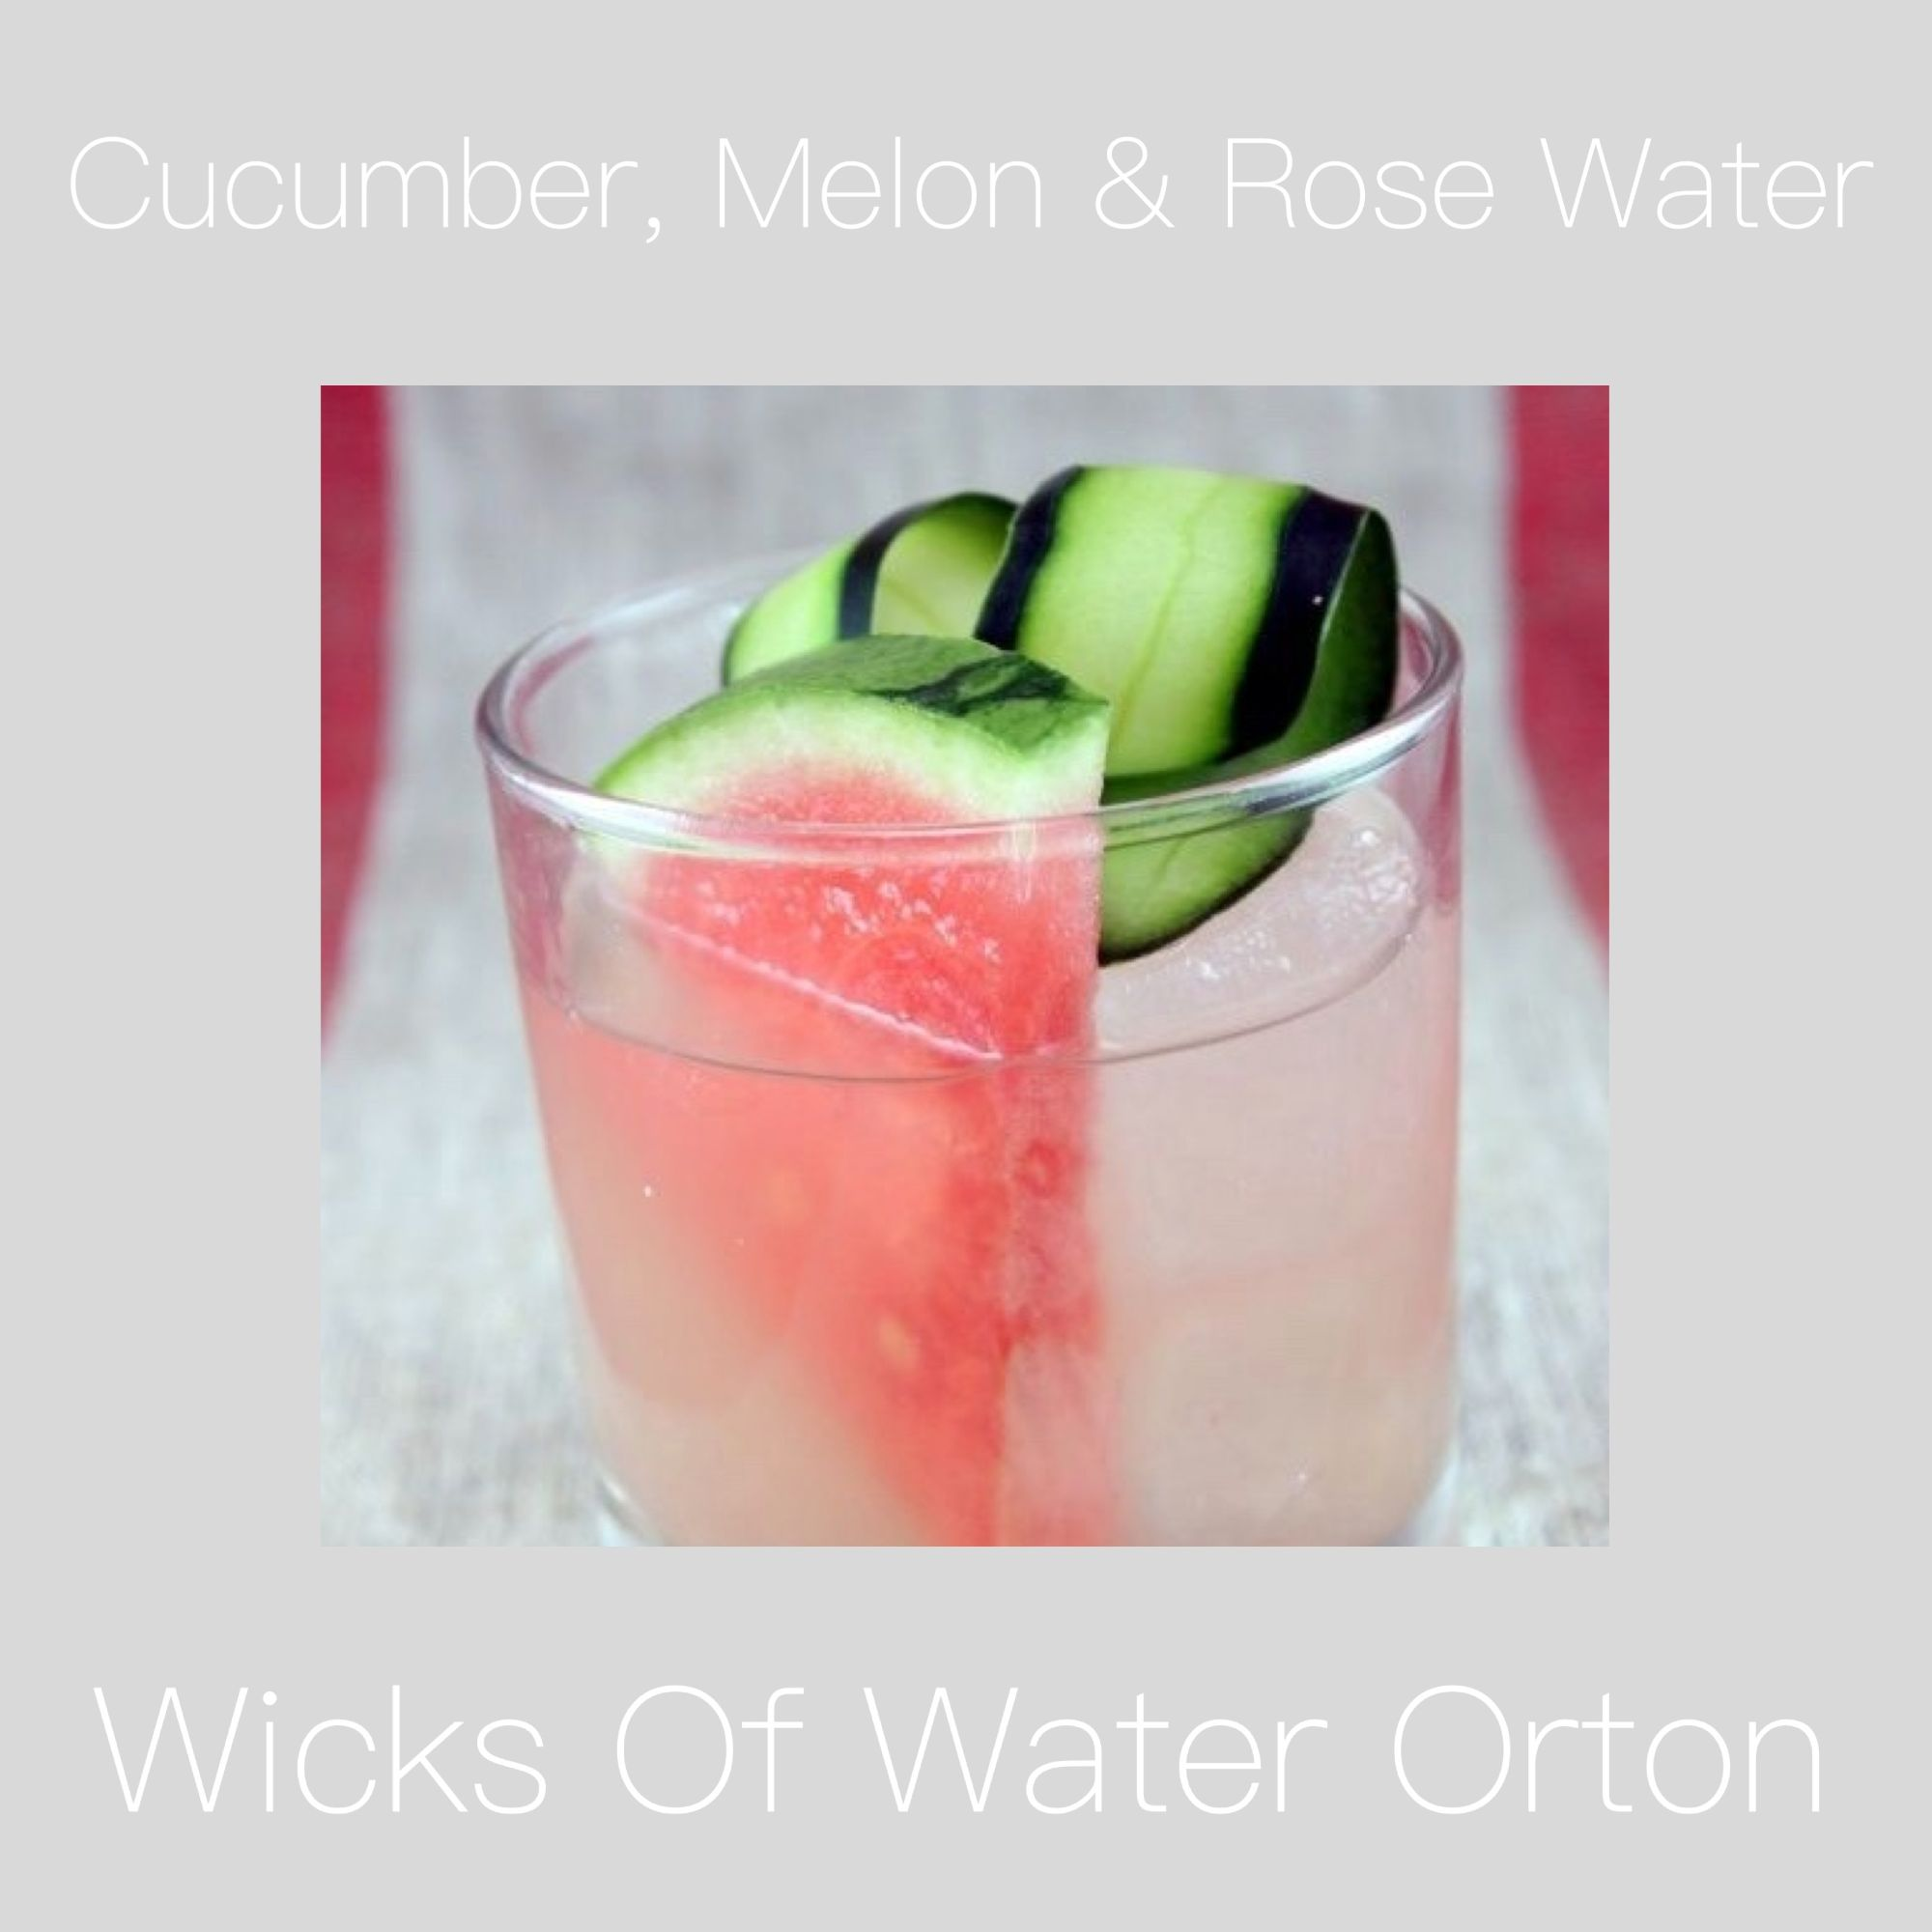 Cucumber, Melon and Rose Water